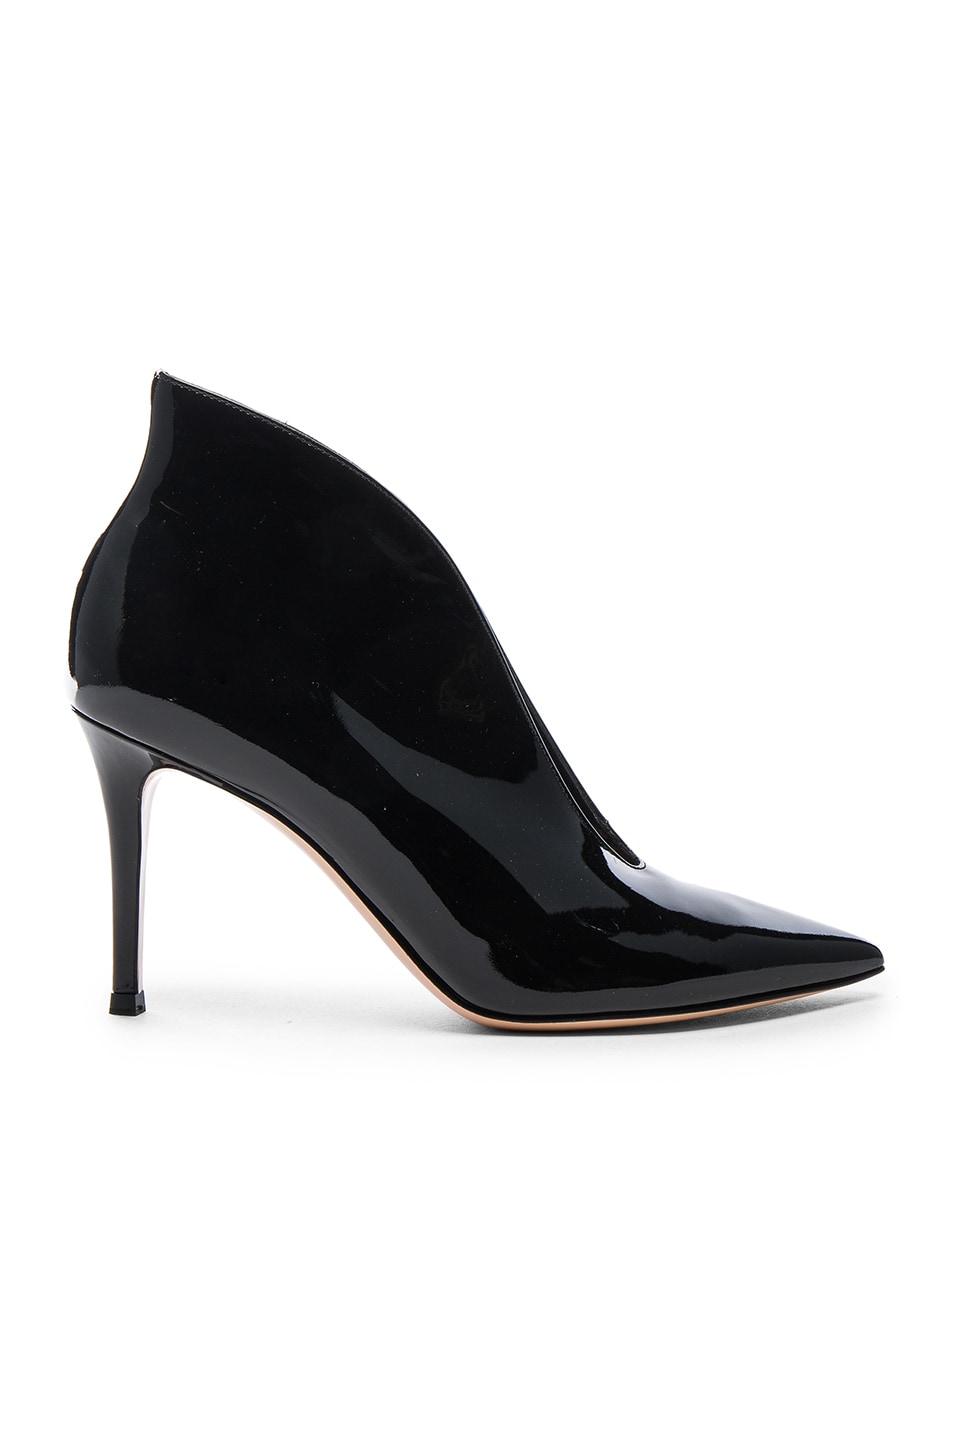 Image 1 of Gianvito Rossi Patent Cut Out Heels in Black